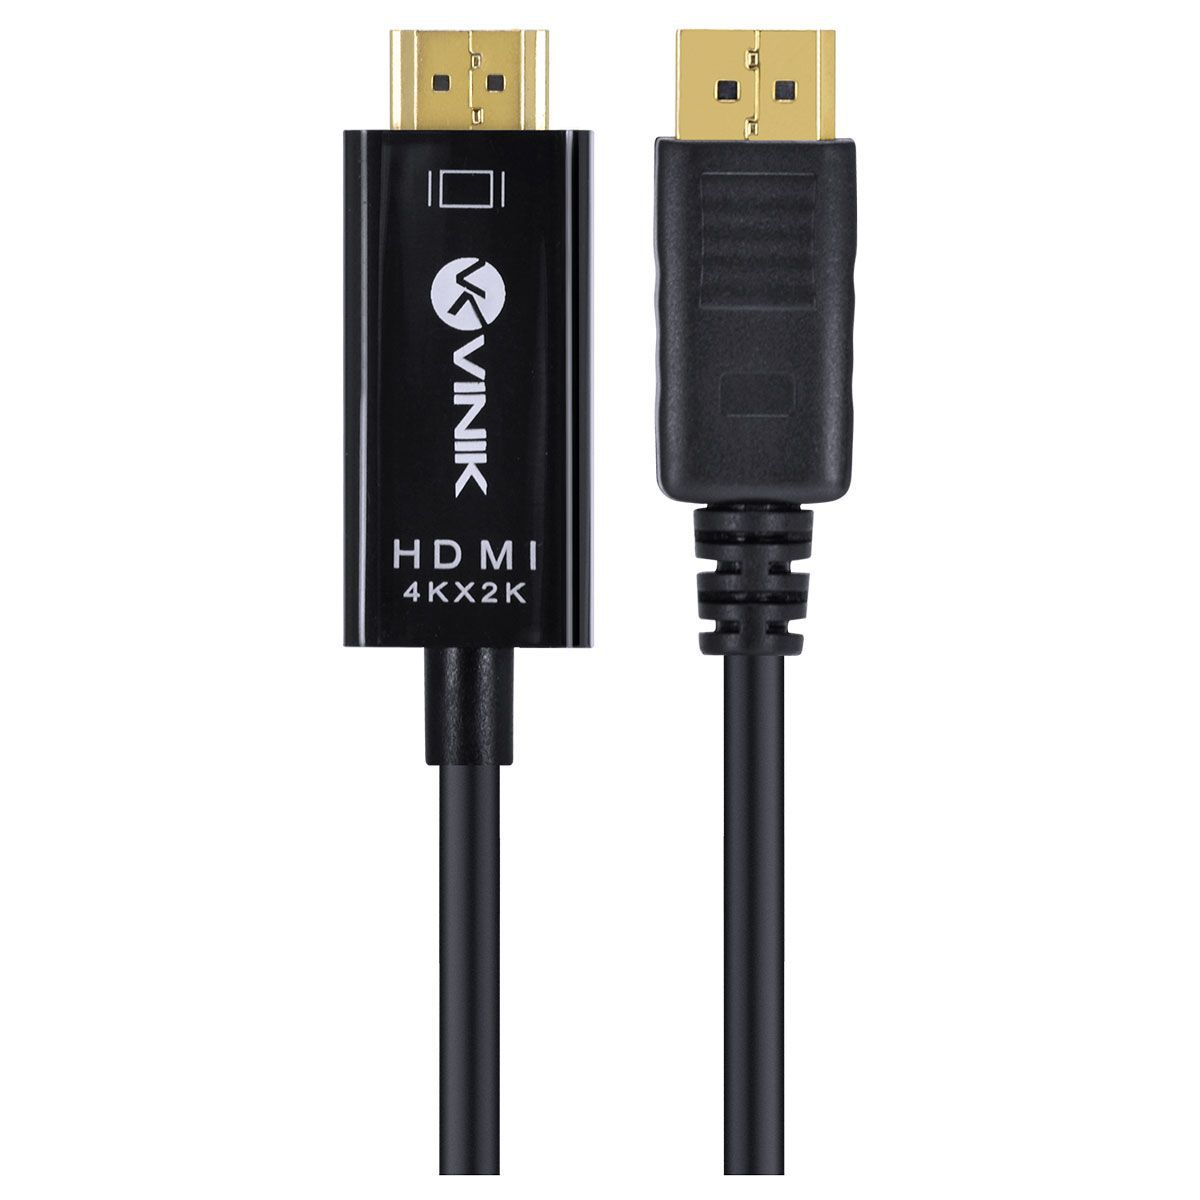 Cabo Displayport 1.3v para HDMI 2.0 4K 30Hz Ultra HD 2 Metros H20DP13-2 29258 - Vinik